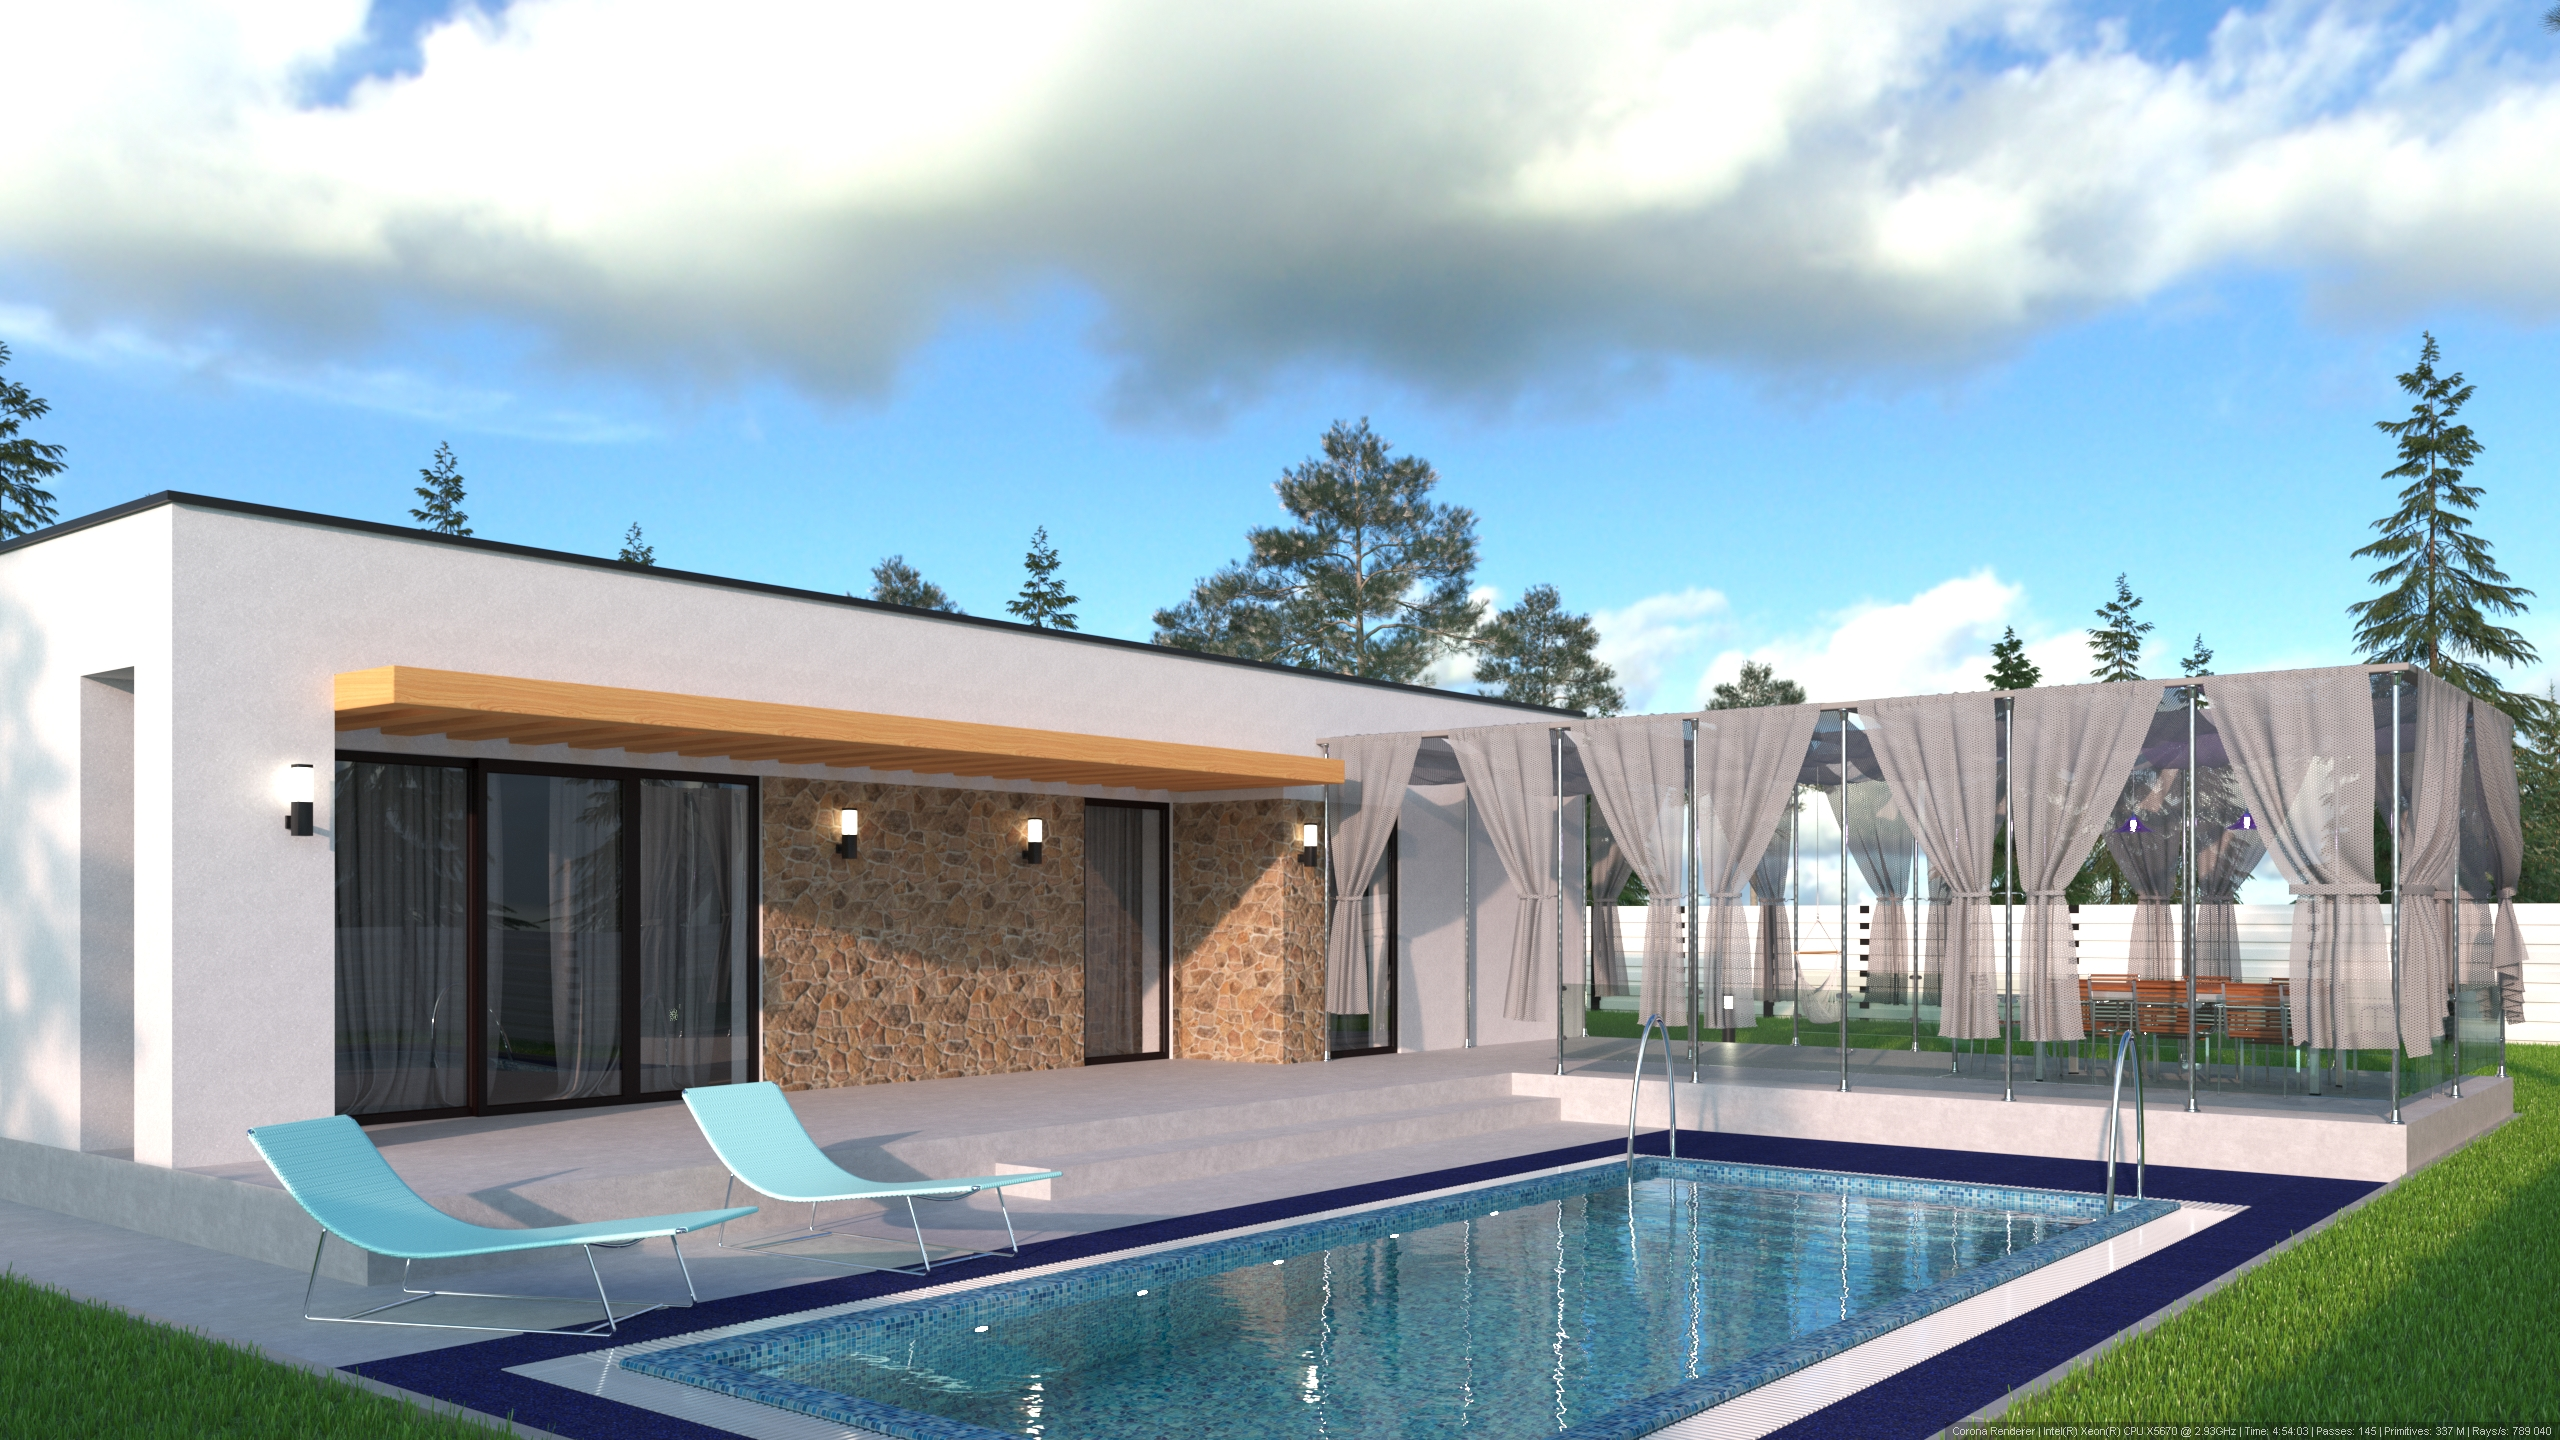 House on the plot in 3d max corona render image